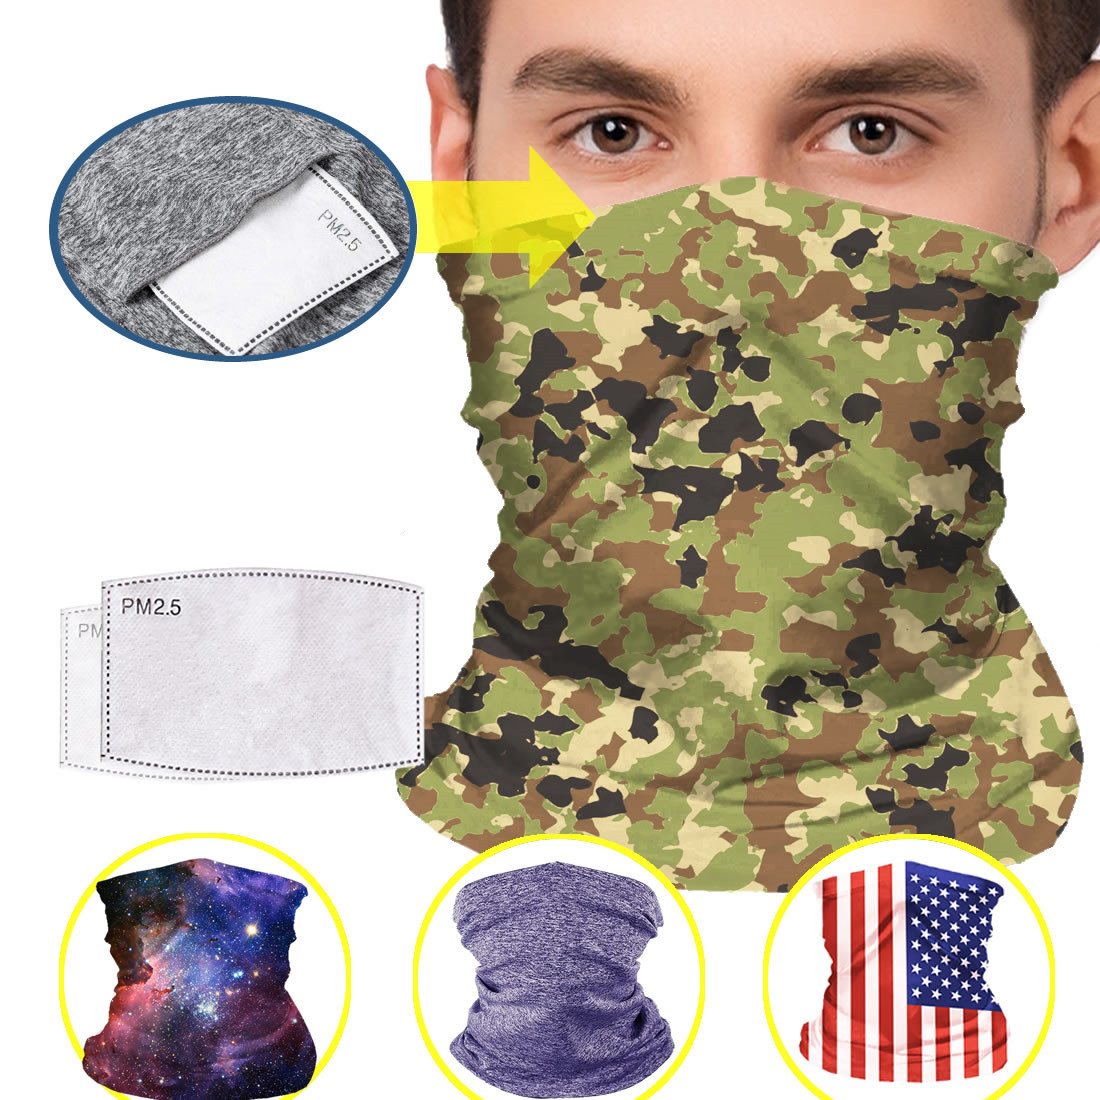 Mask Gaiters with Filters